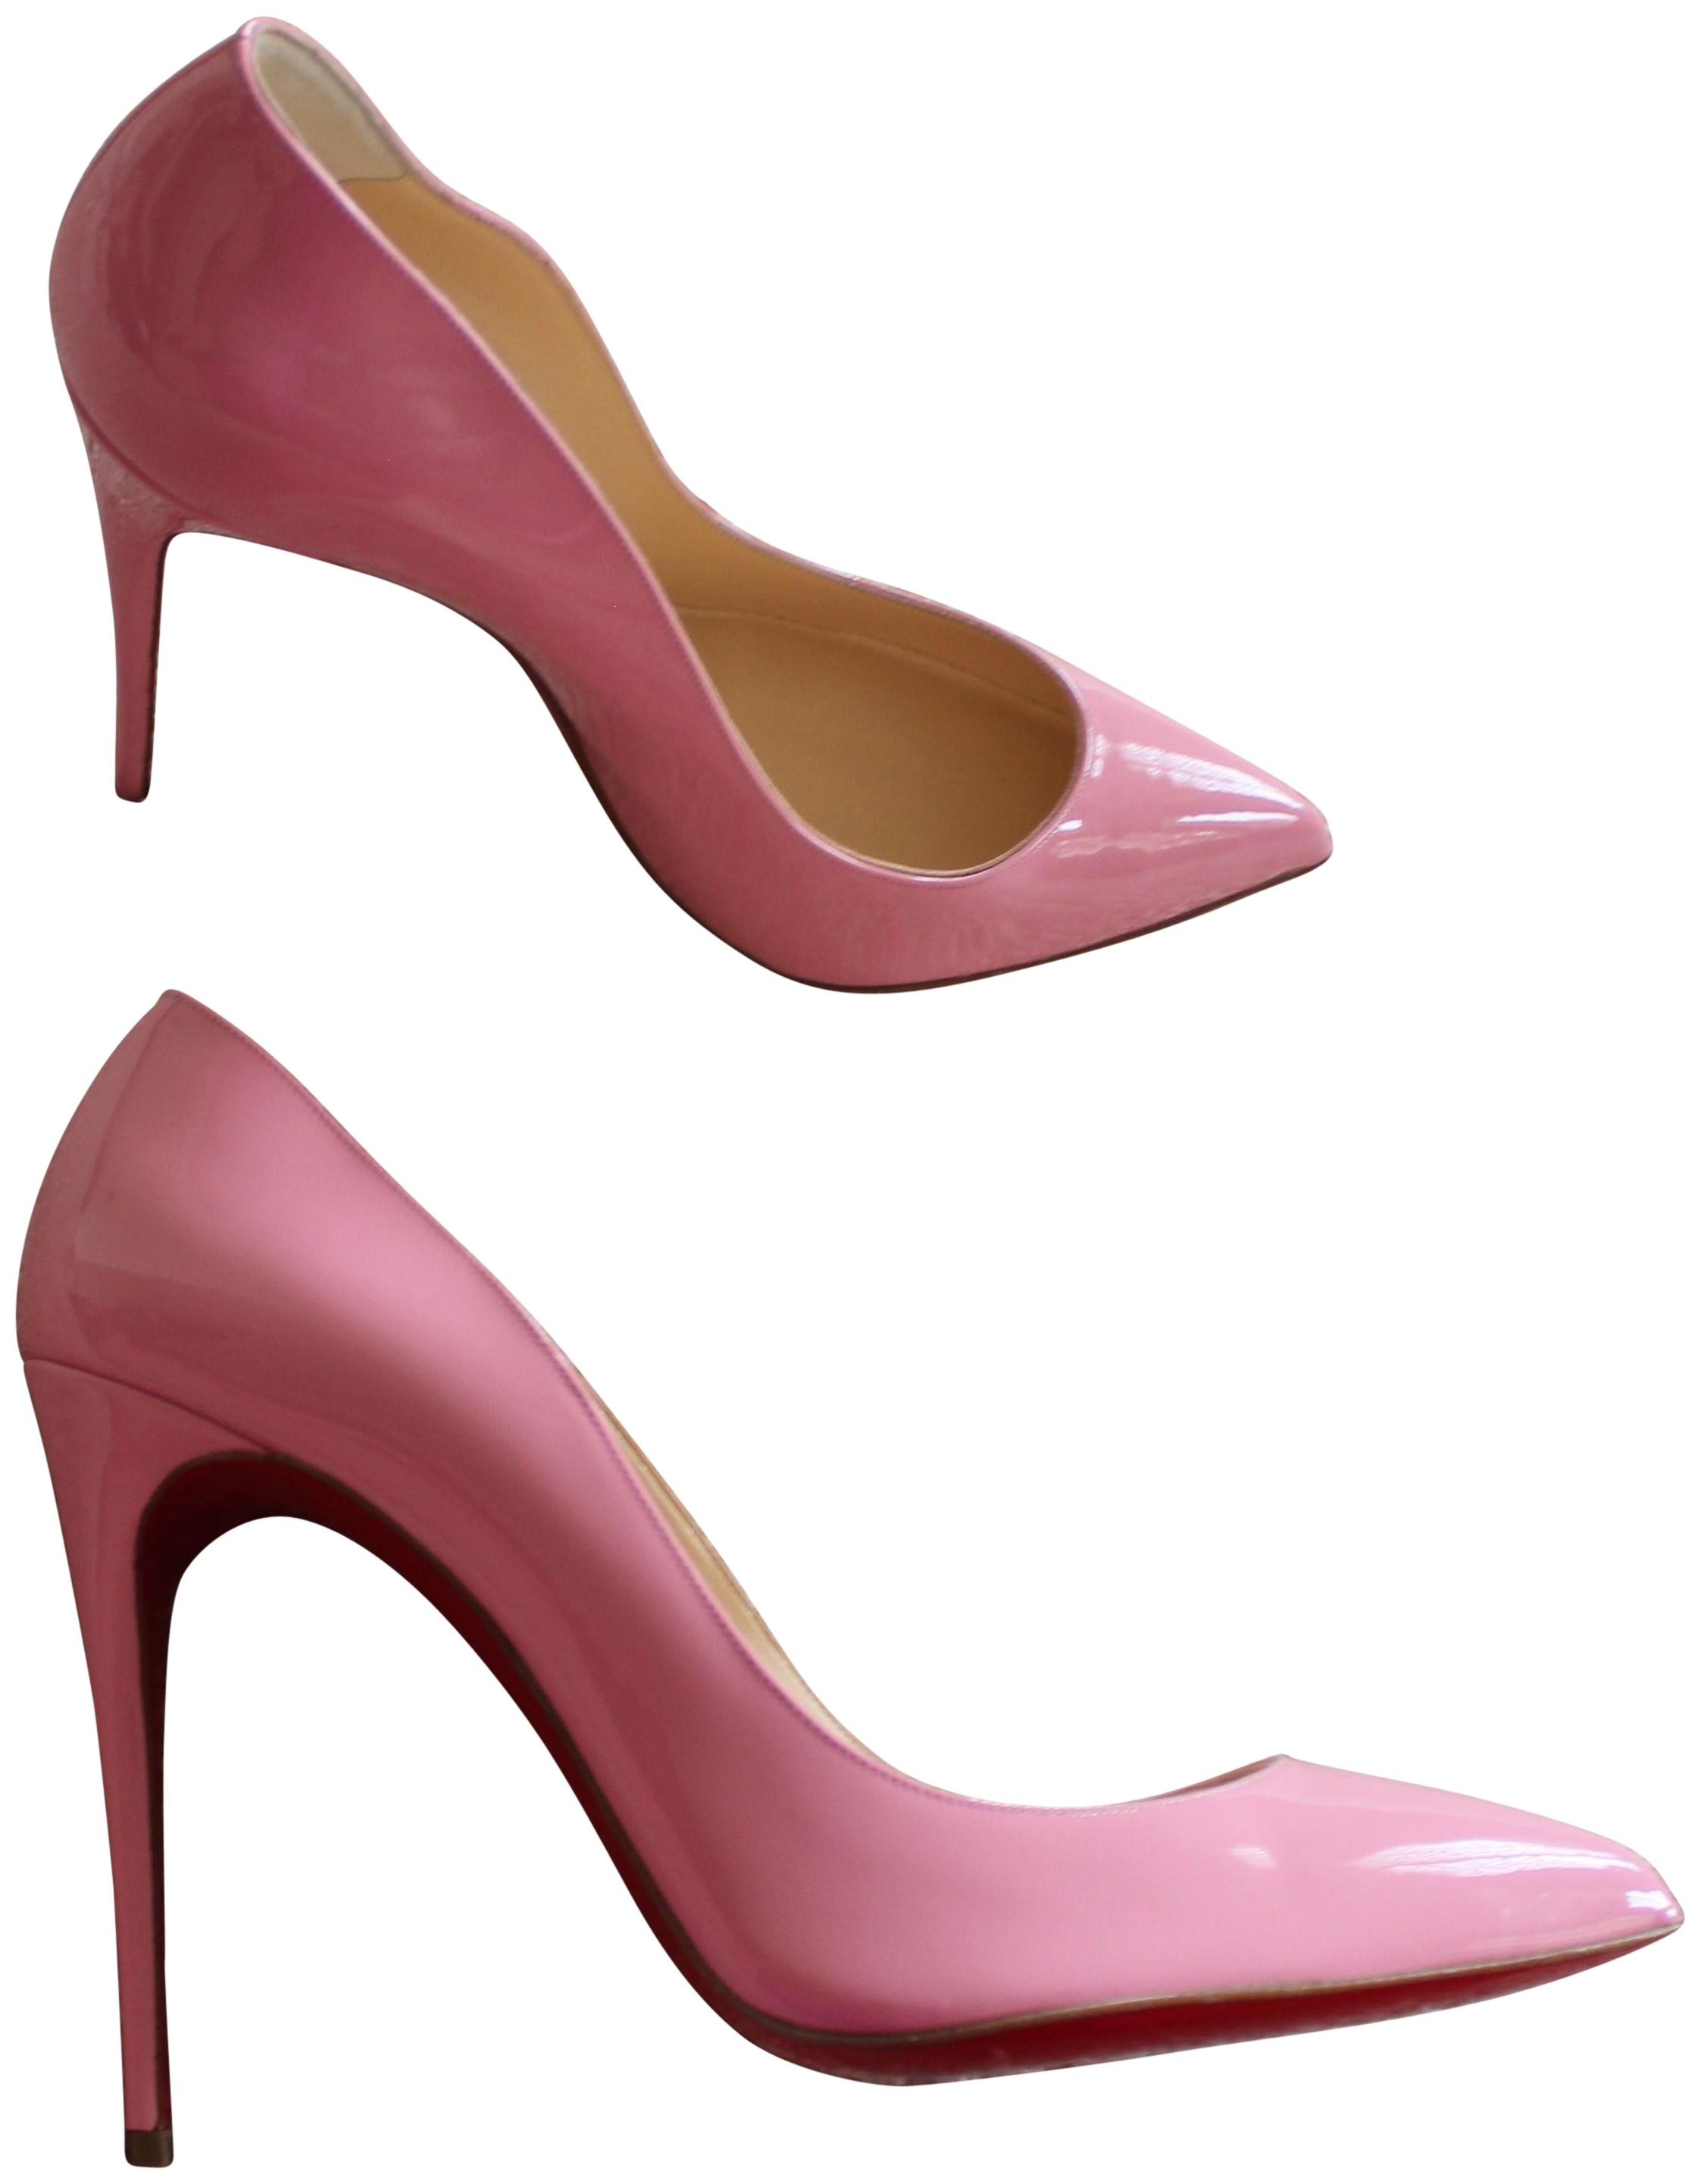 e57a168e01b7 Christian Louboutin Pink Patent Leather Pigalle Follies 100 Pumps Size EU  41 (Approx. US 11) Regular (M